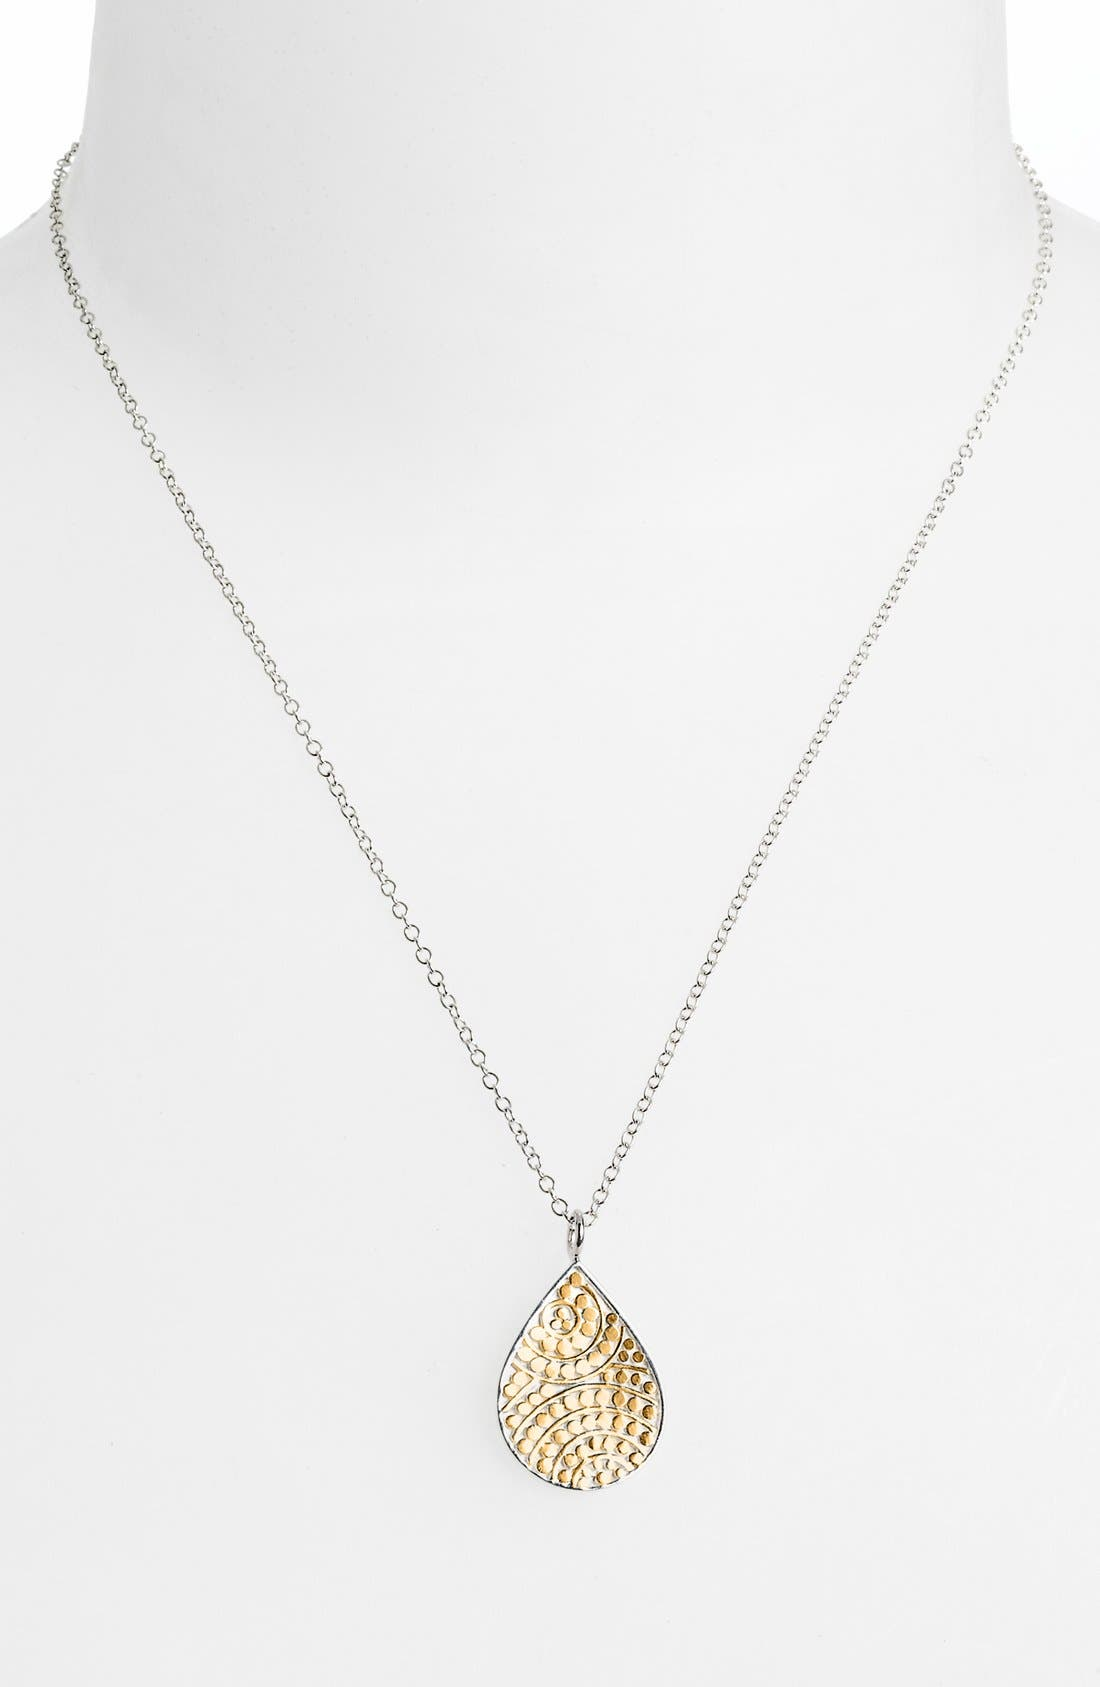 Main Image - Anna Beck 'Rajua' Small Reversible Teardrop Necklace